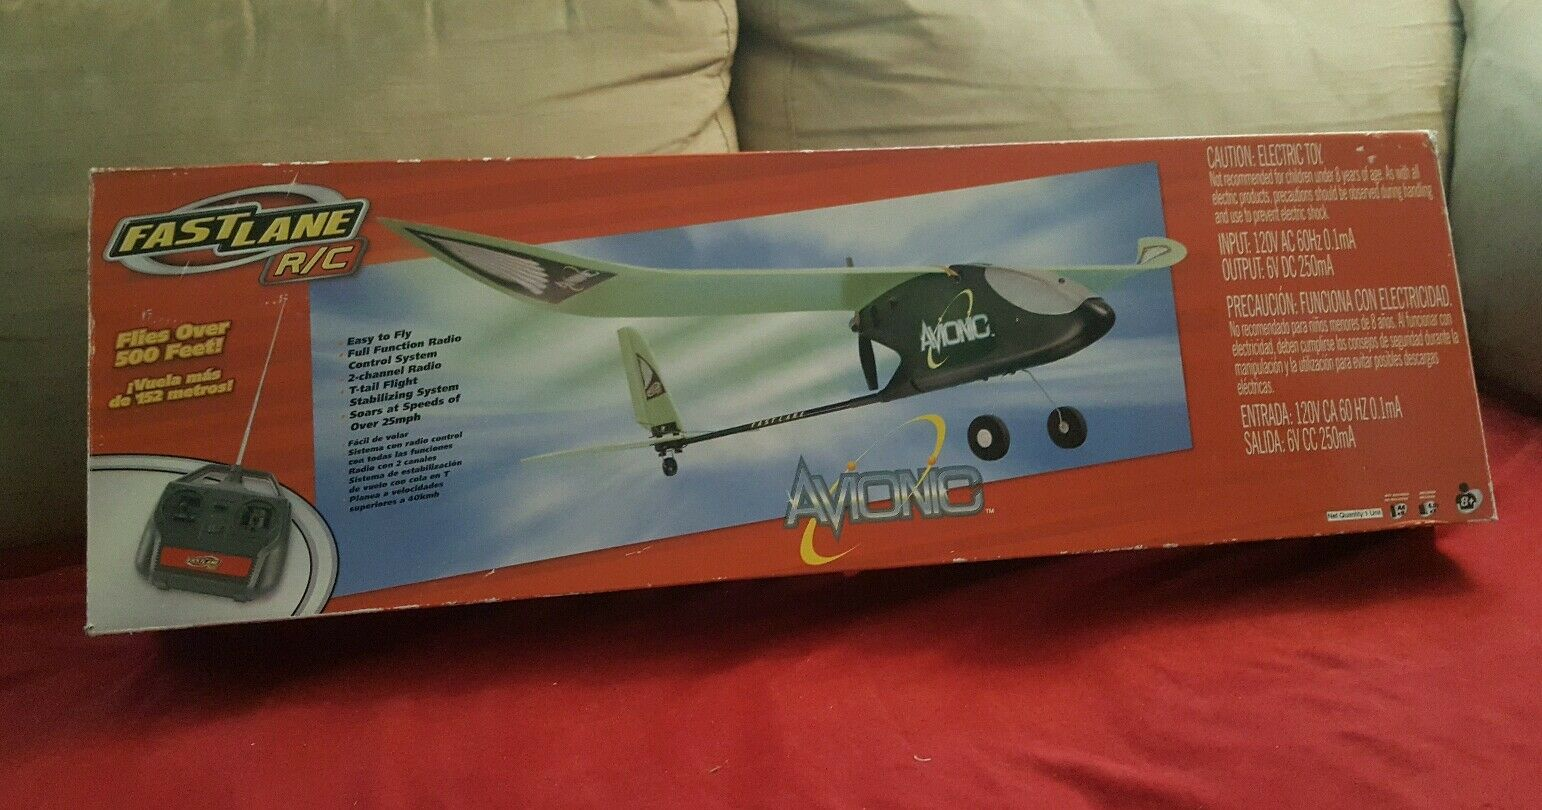 FASTLANE R/C AVIONIC KIT R/C Plane~ over 500FT high~ Learning Beginner